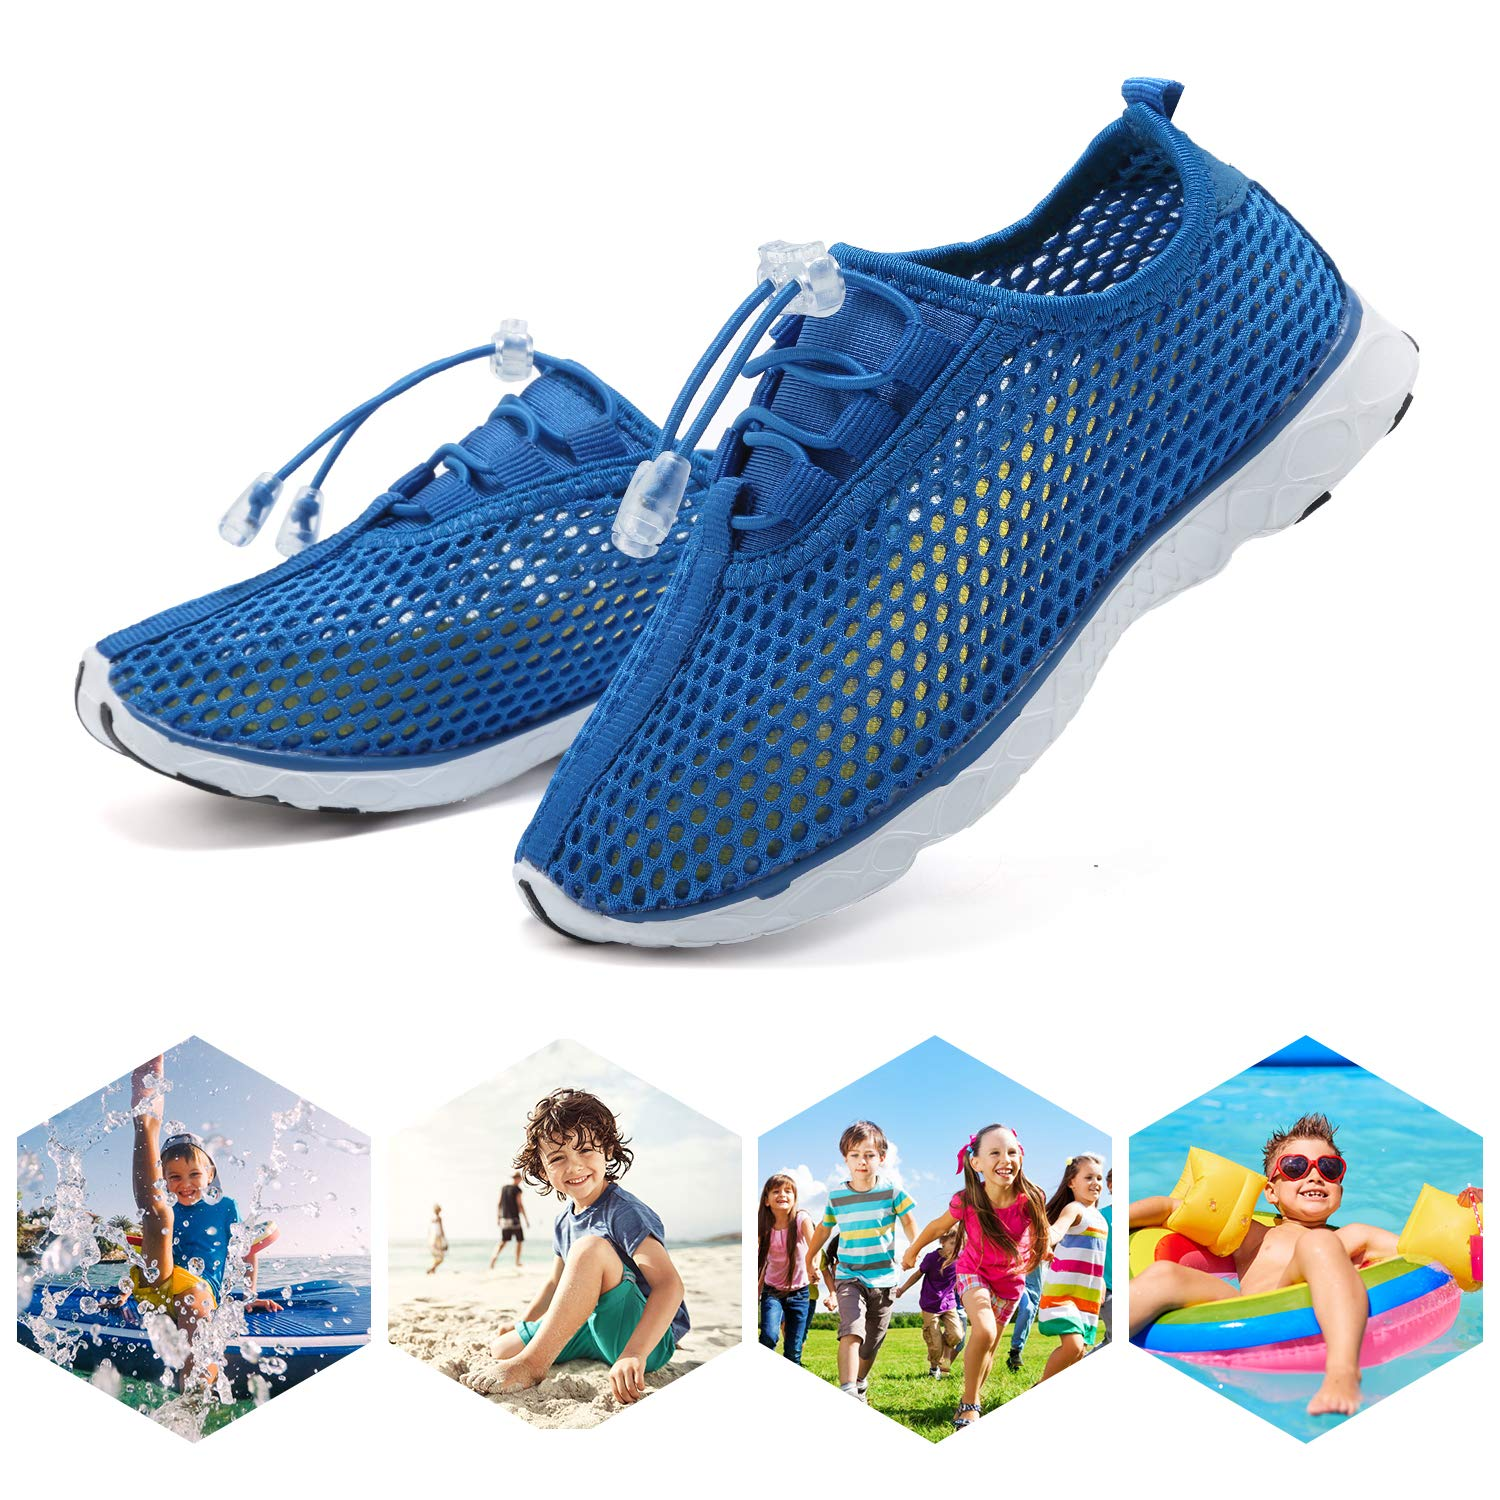 Toddler//Little Kid//Big Kid U118SSXT001 CIOR Boys /& Girls Water Shoes Aqua Shoes Swim Shoes Athletic Sneakers Lightweight Sport Shoes